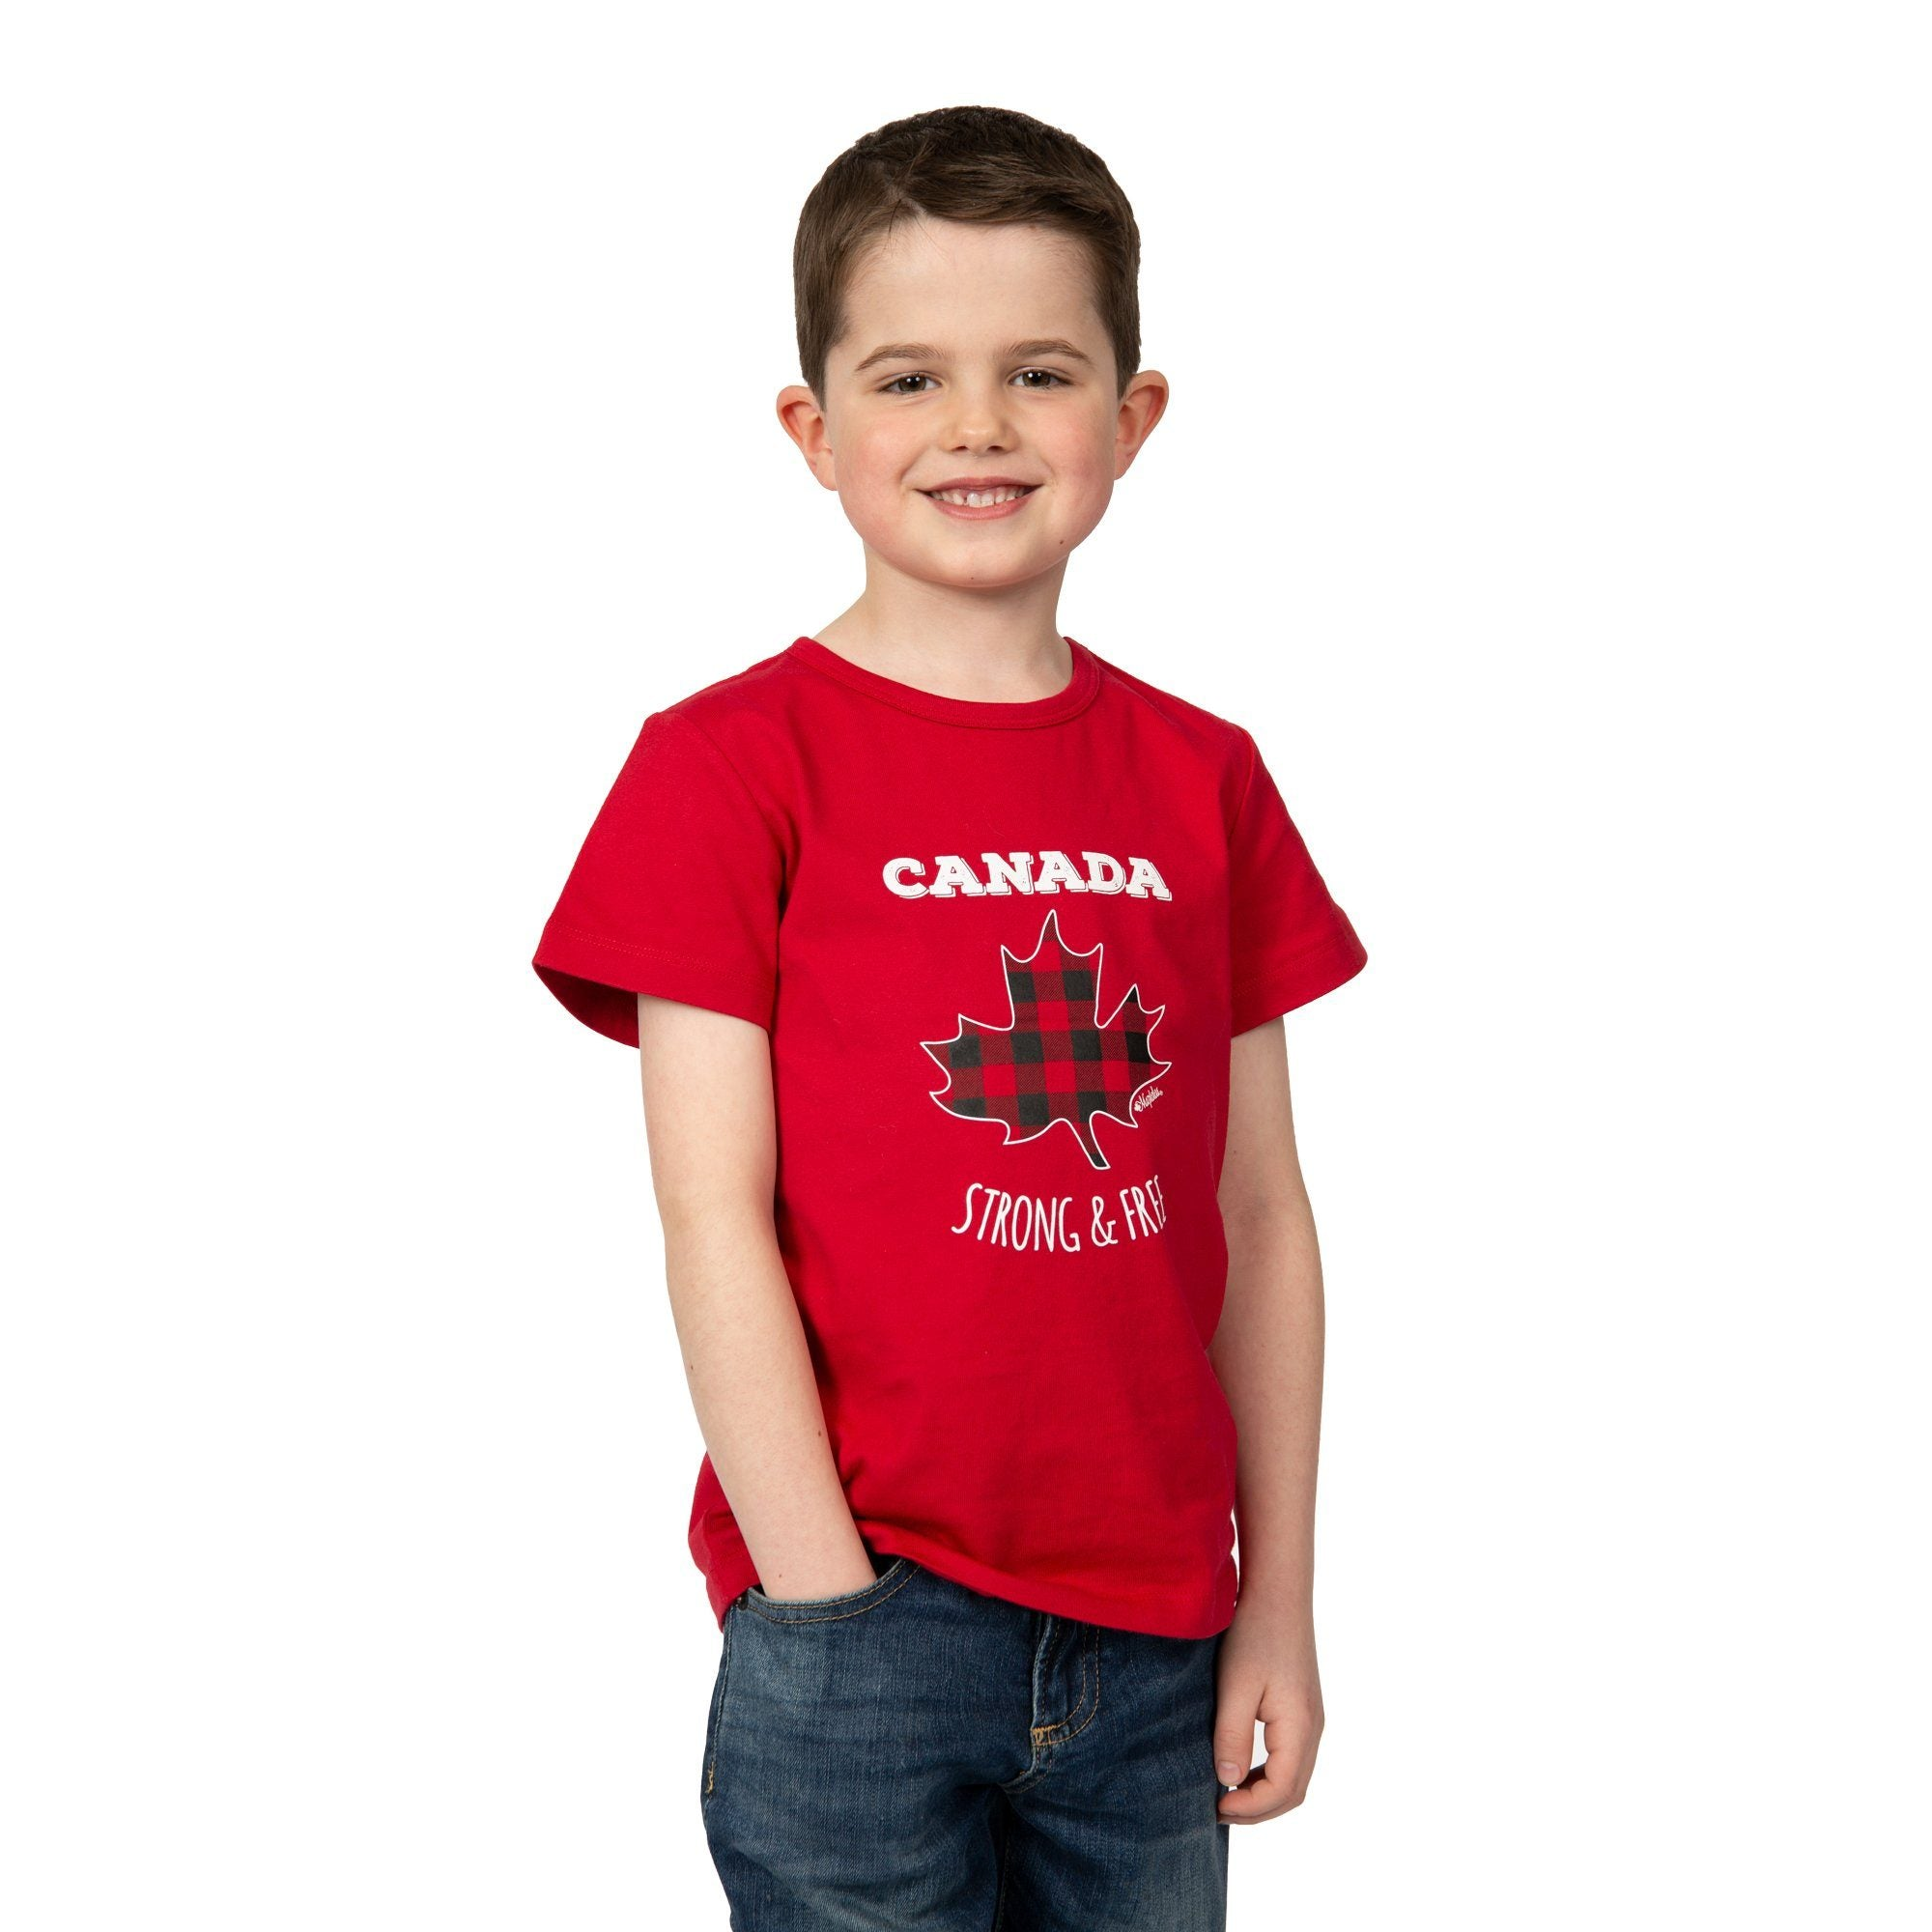 Oh Canada! Shirt for Toddlers